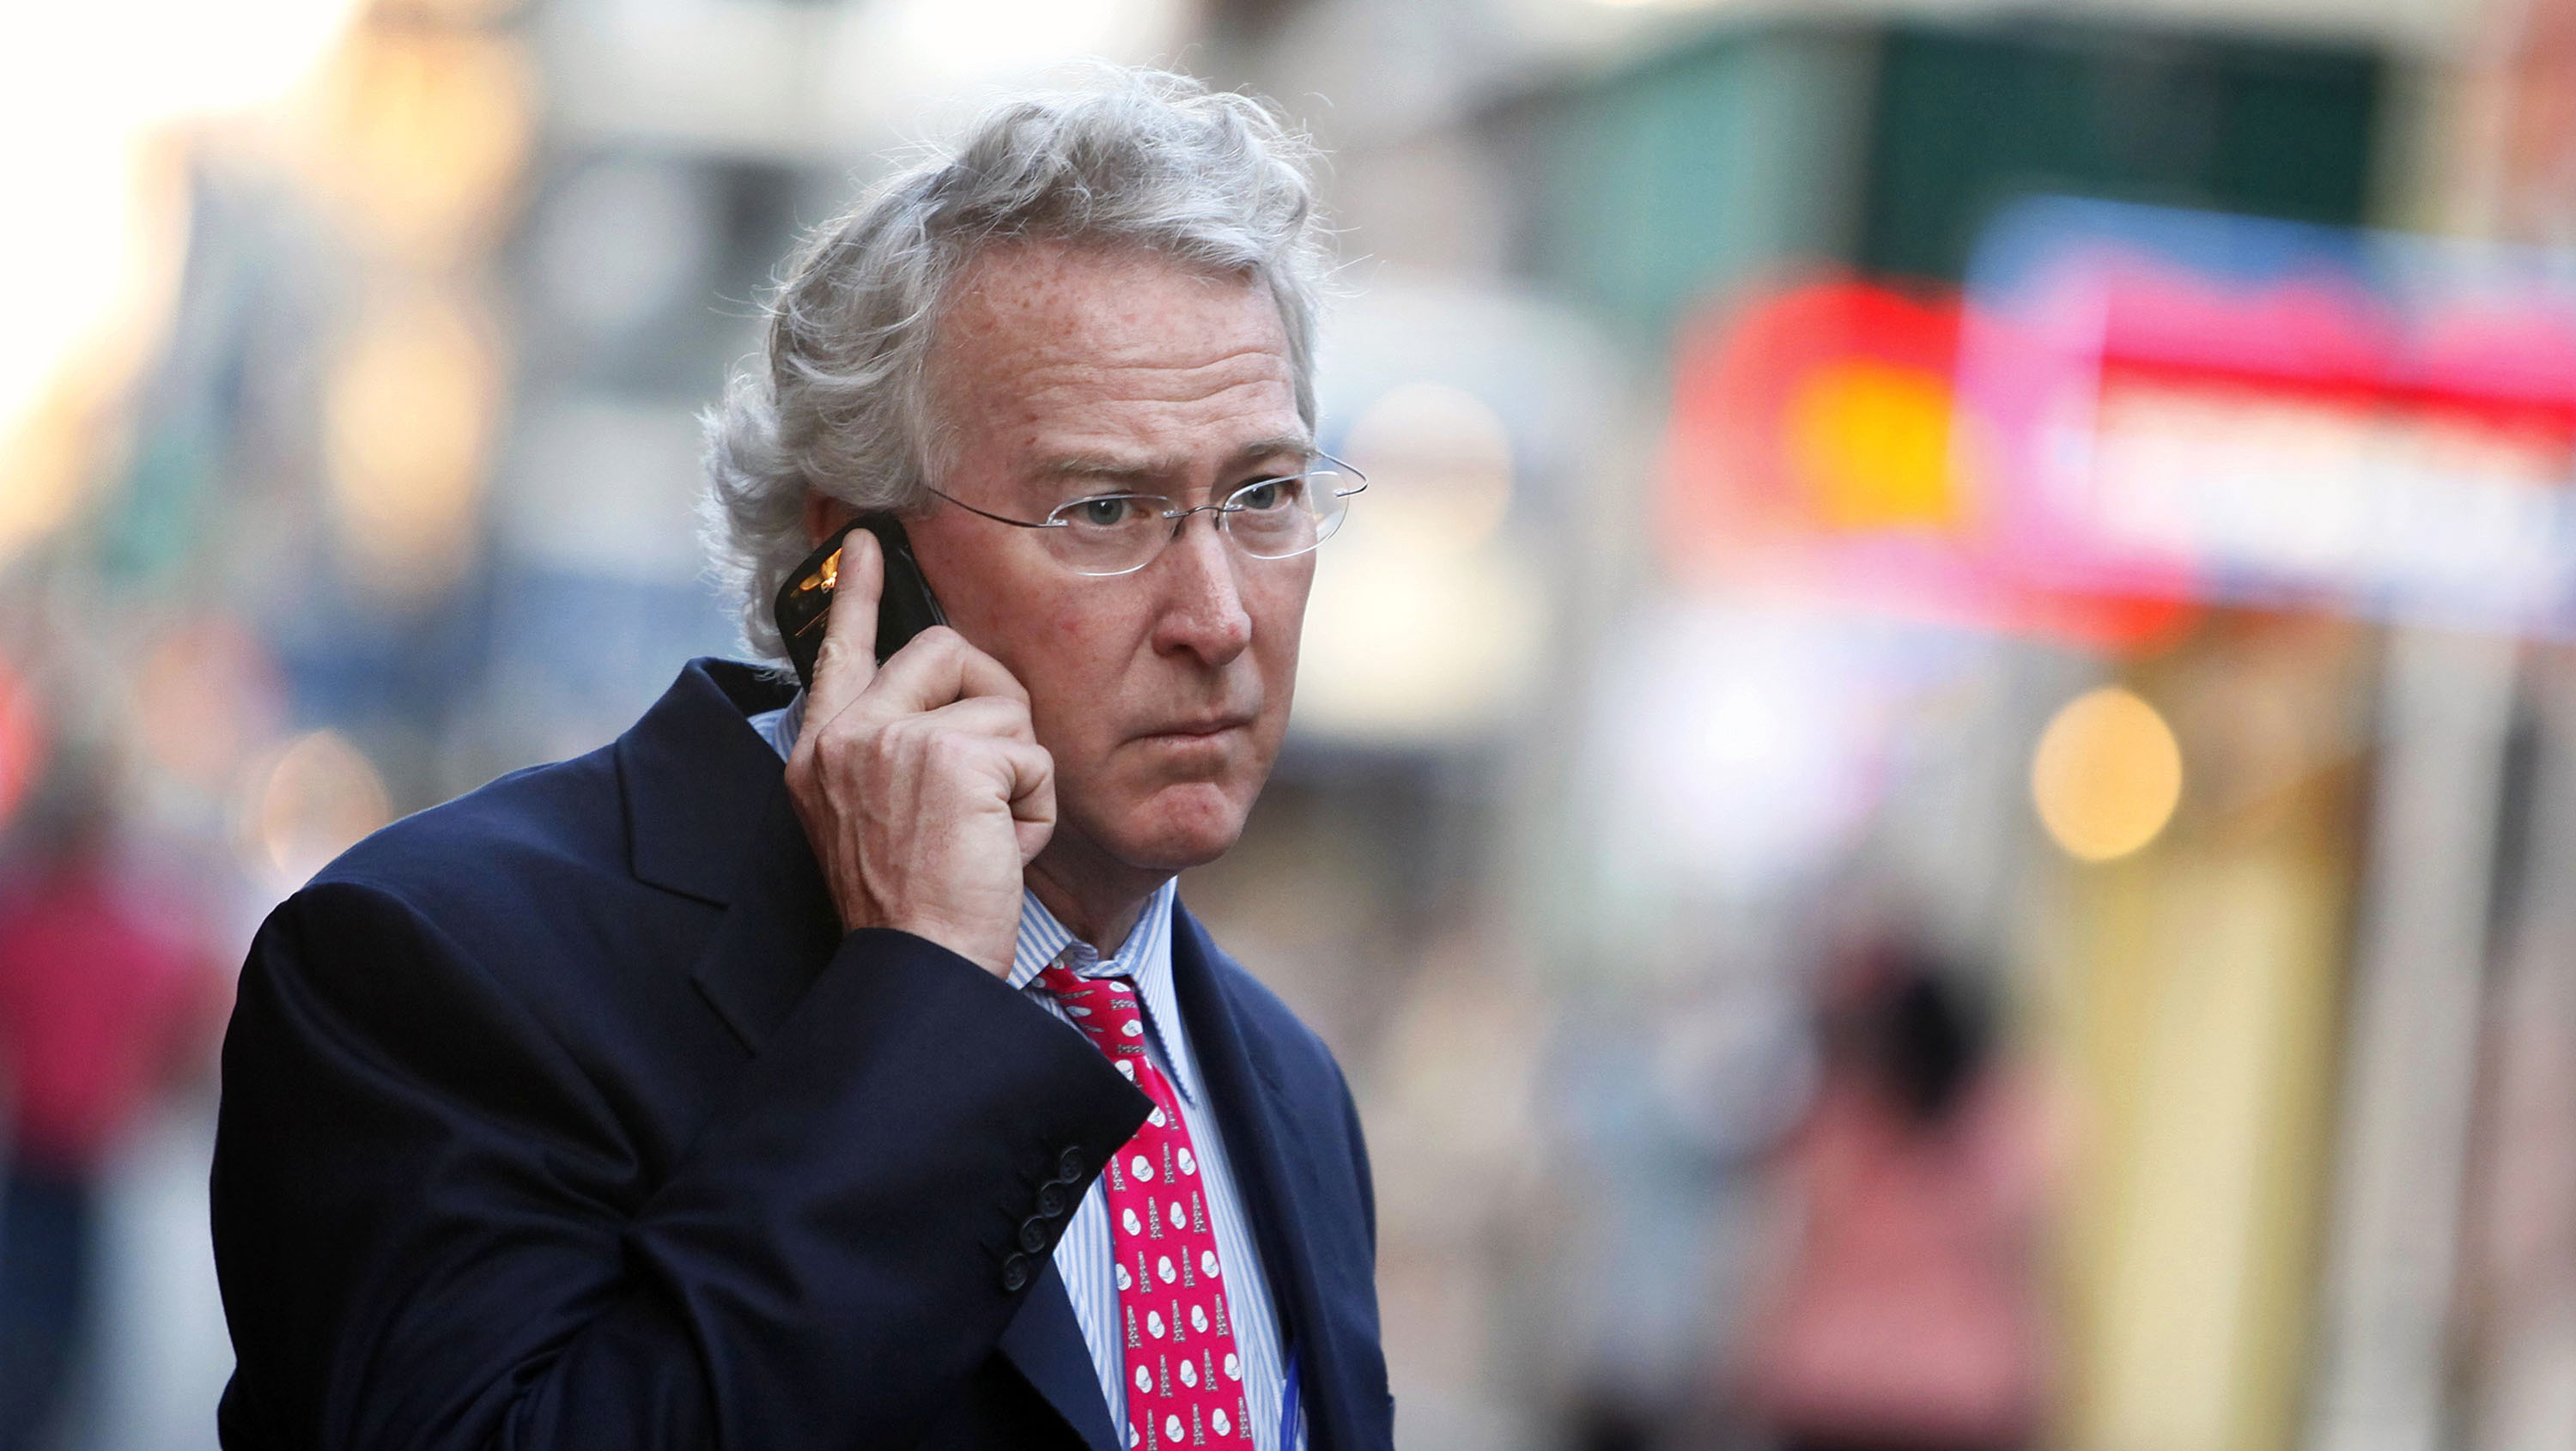 Fracking Pioneer Aubrey McClendon Dies in Car Crash a Day After Anti-Trust Indictment